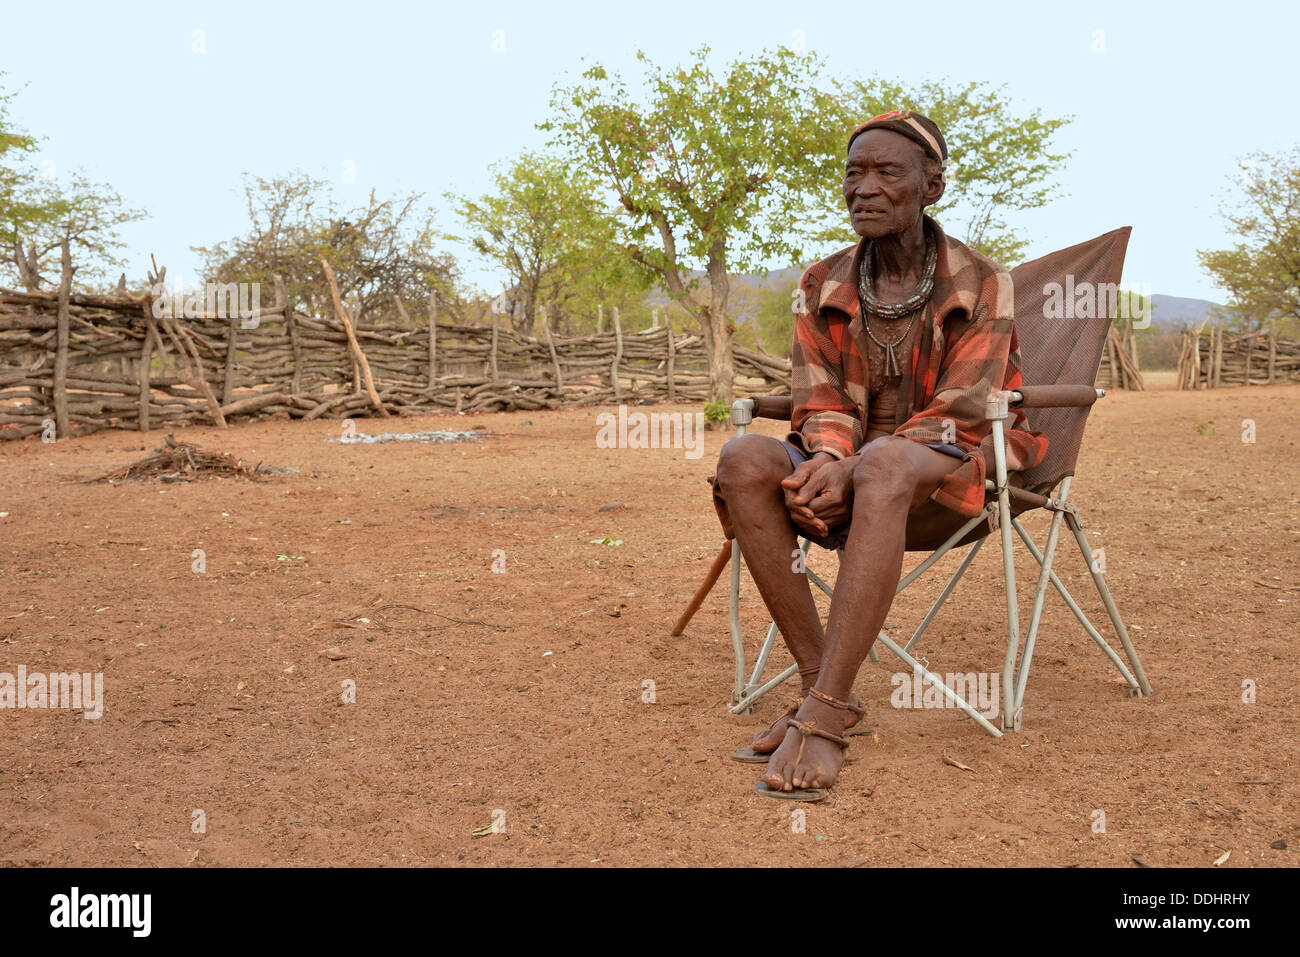 Chief Hikuminue Kapika, chief of the Namibian Himba, in his kraal - Stock Image